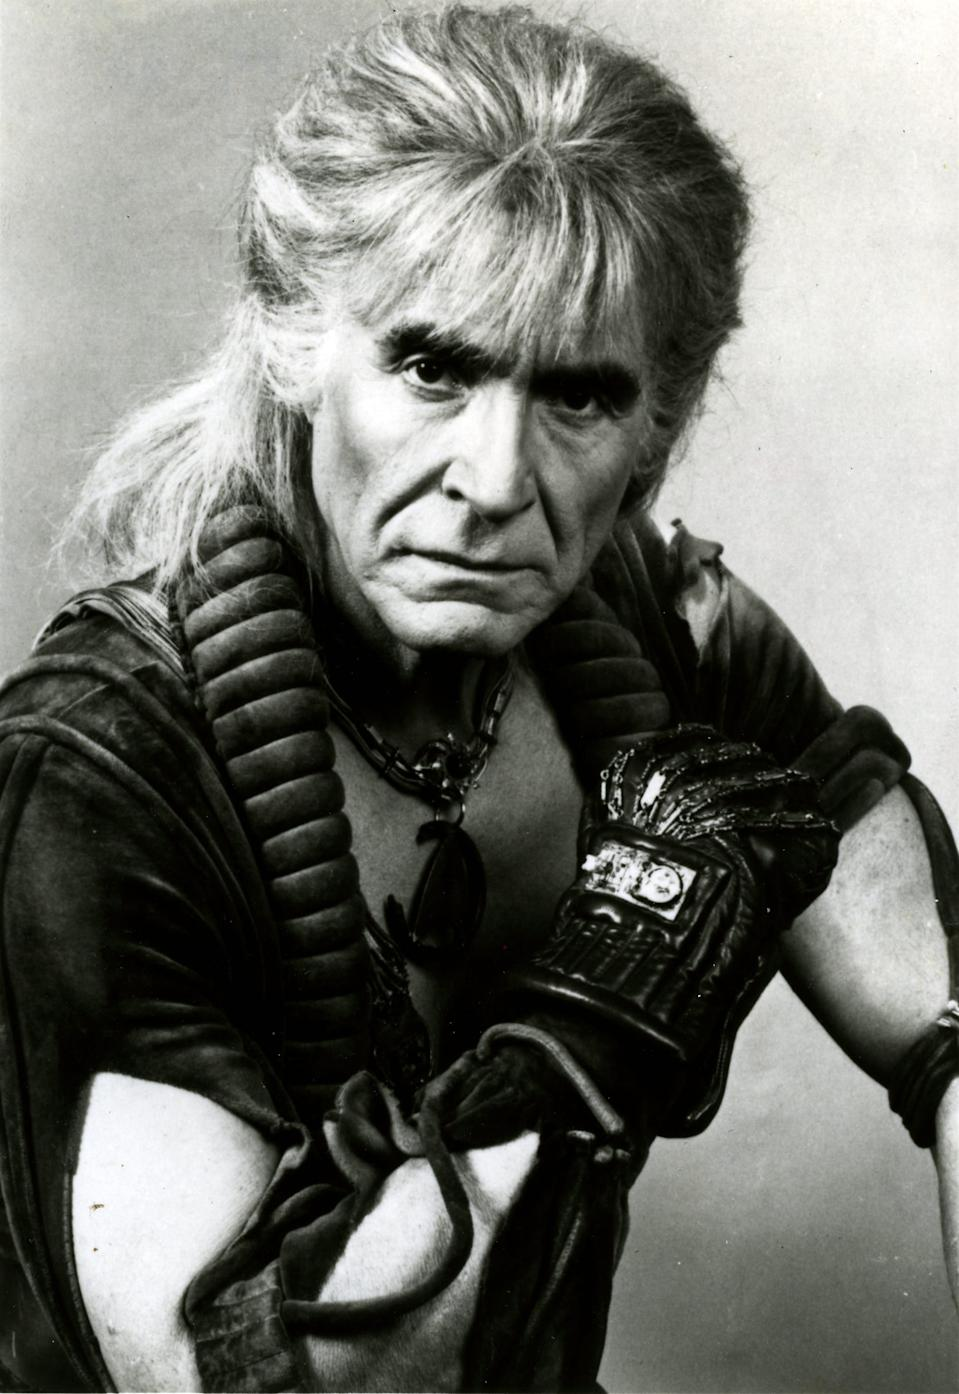 Ricardo Montalban played the title character in 1982's